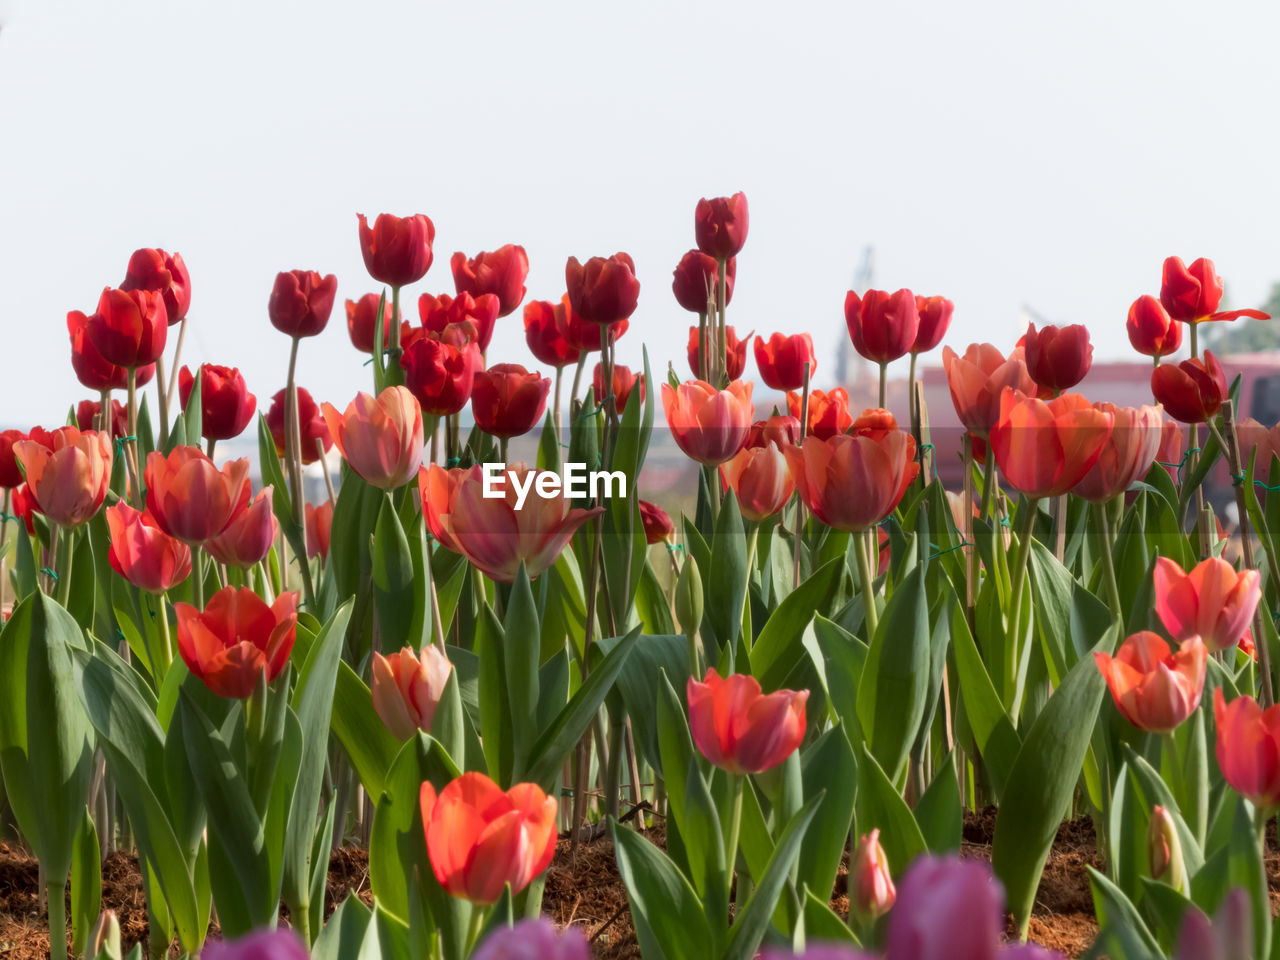 flower, flowering plant, plant, beauty in nature, freshness, vulnerability, fragility, petal, growth, close-up, flower head, red, tulip, nature, inflorescence, field, no people, land, plant stem, green color, outdoors